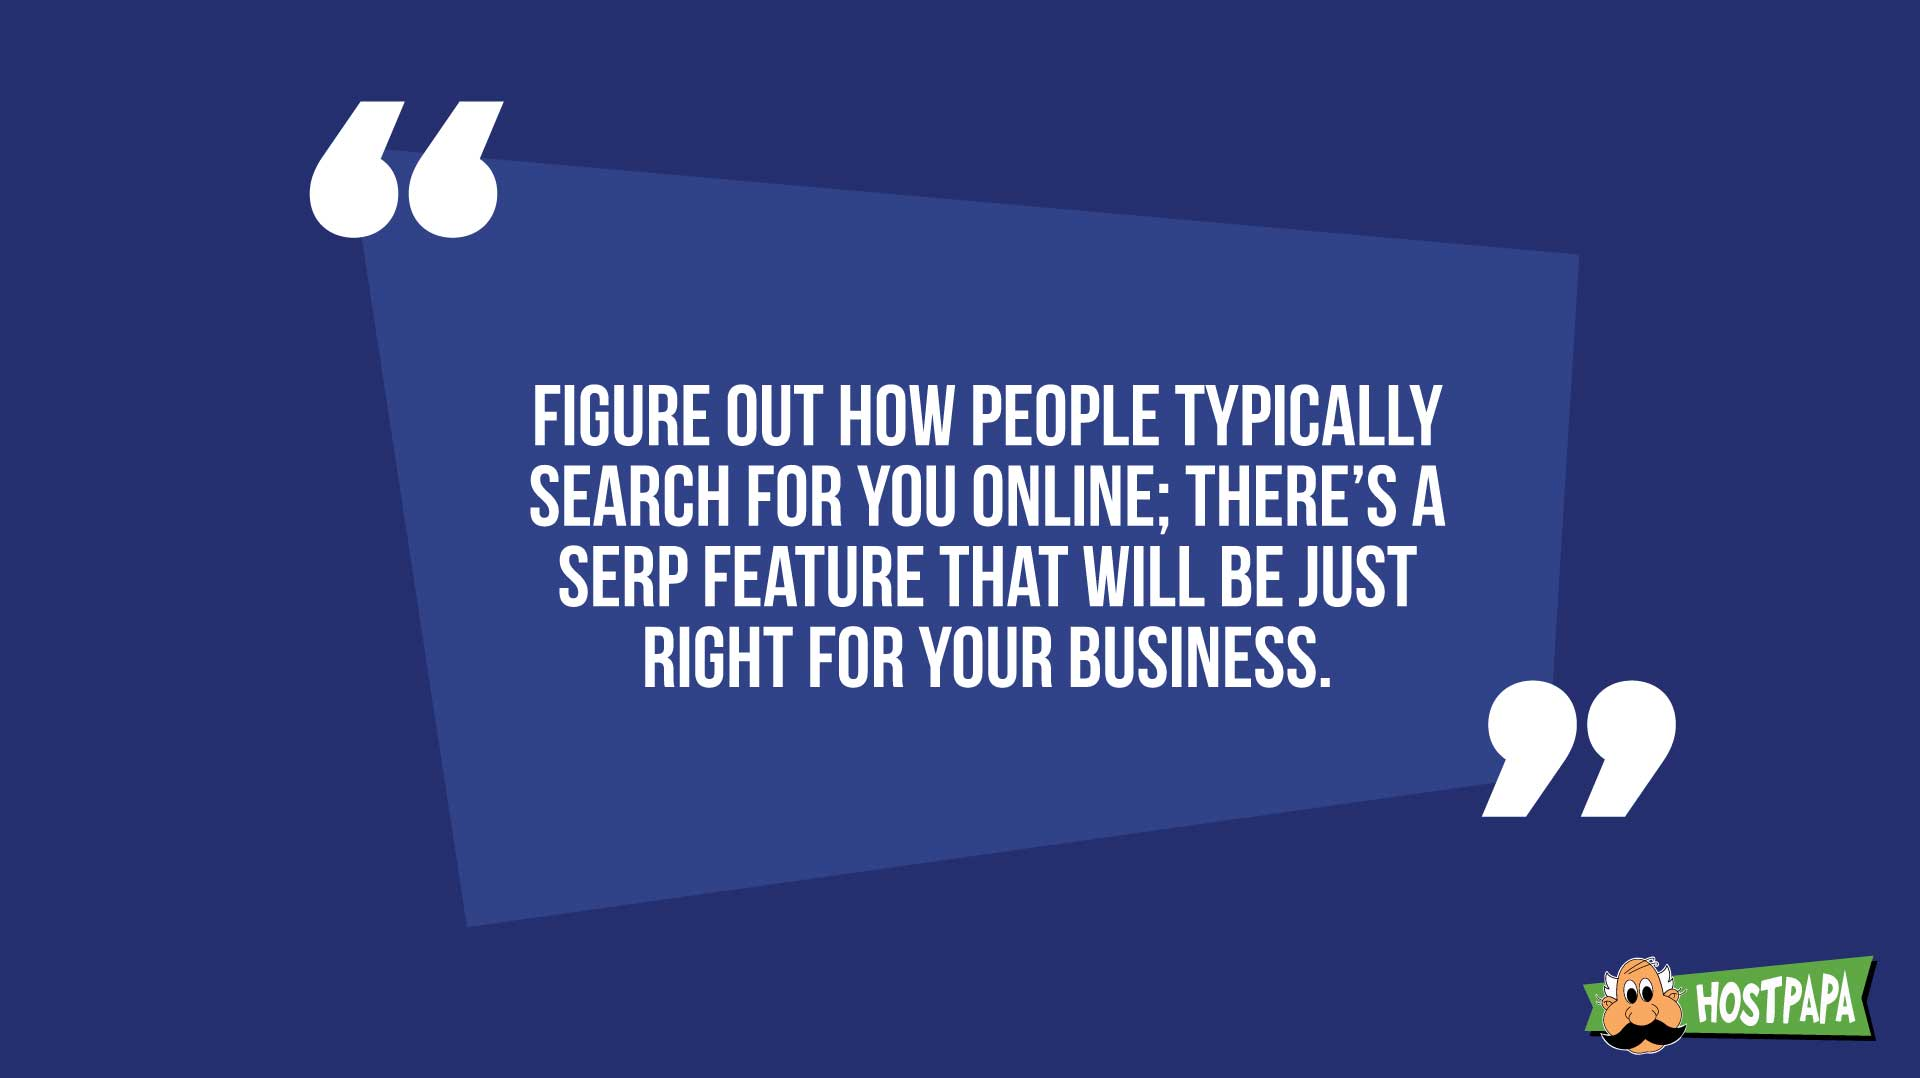 Figure out how people typically search for you online: there's a serp feature that will be just right for your business